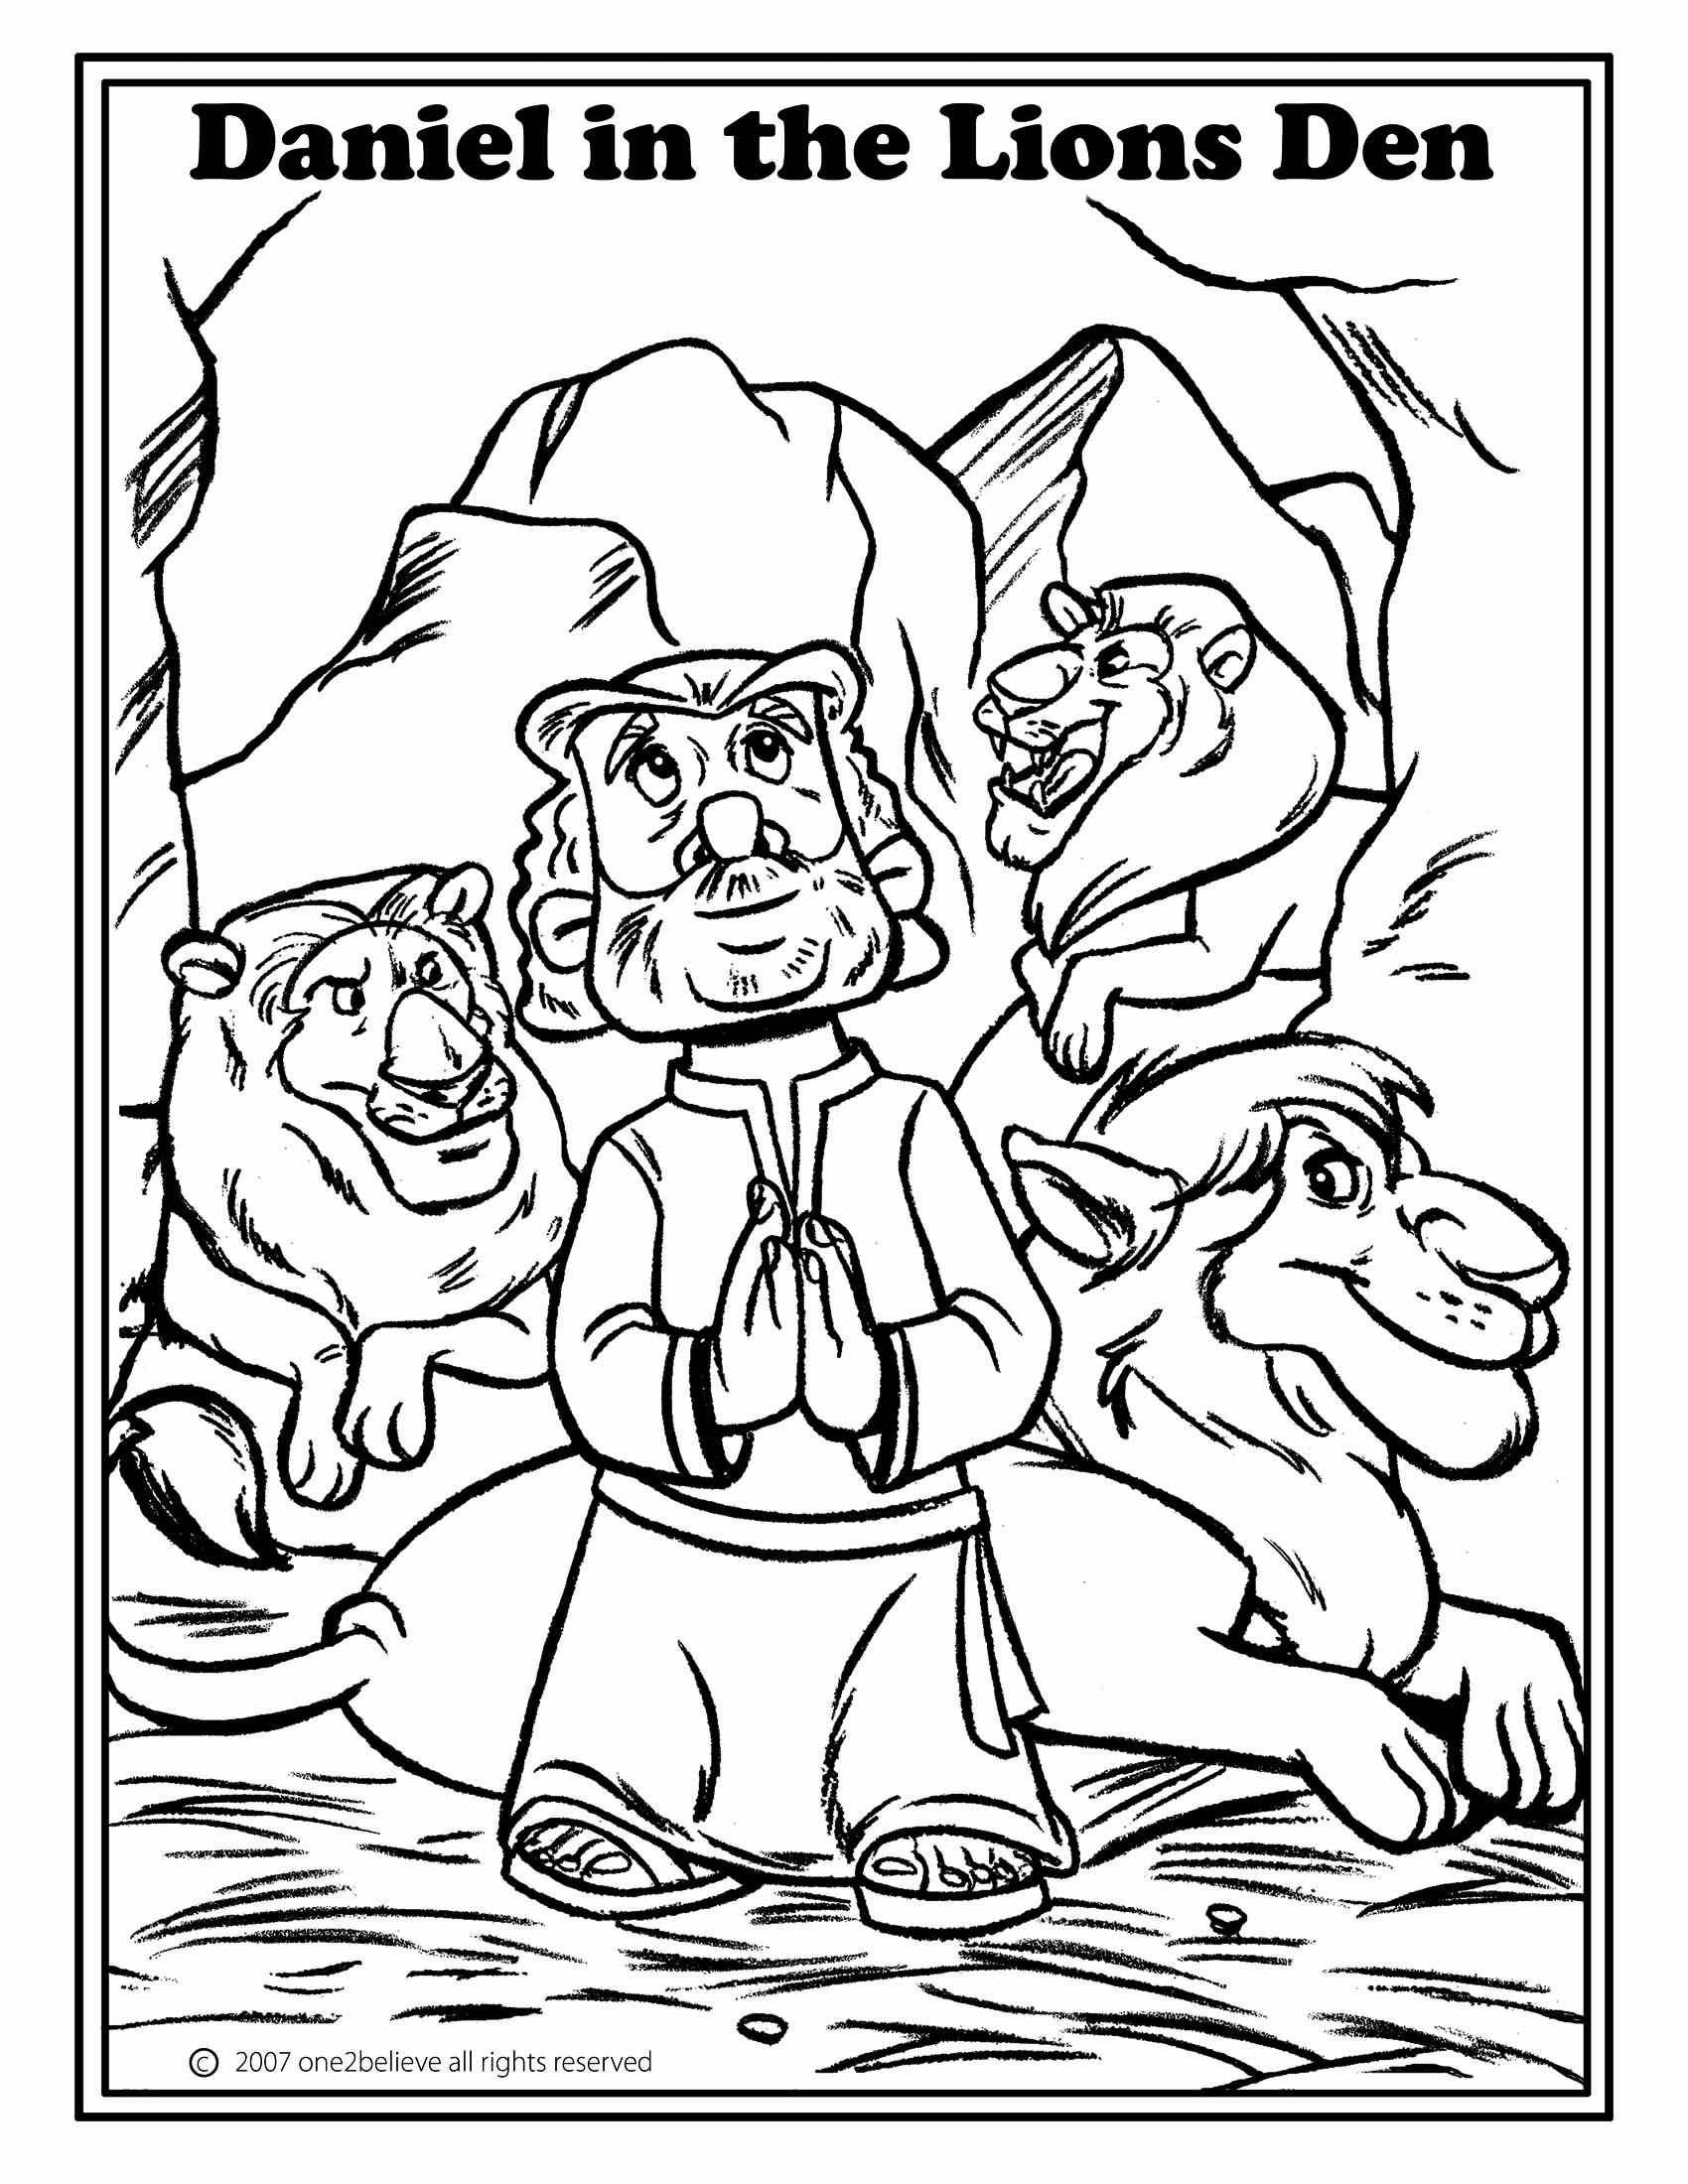 coloring pages for bible stories coloring pages for children is a wonderful activity that stories coloring pages bible for